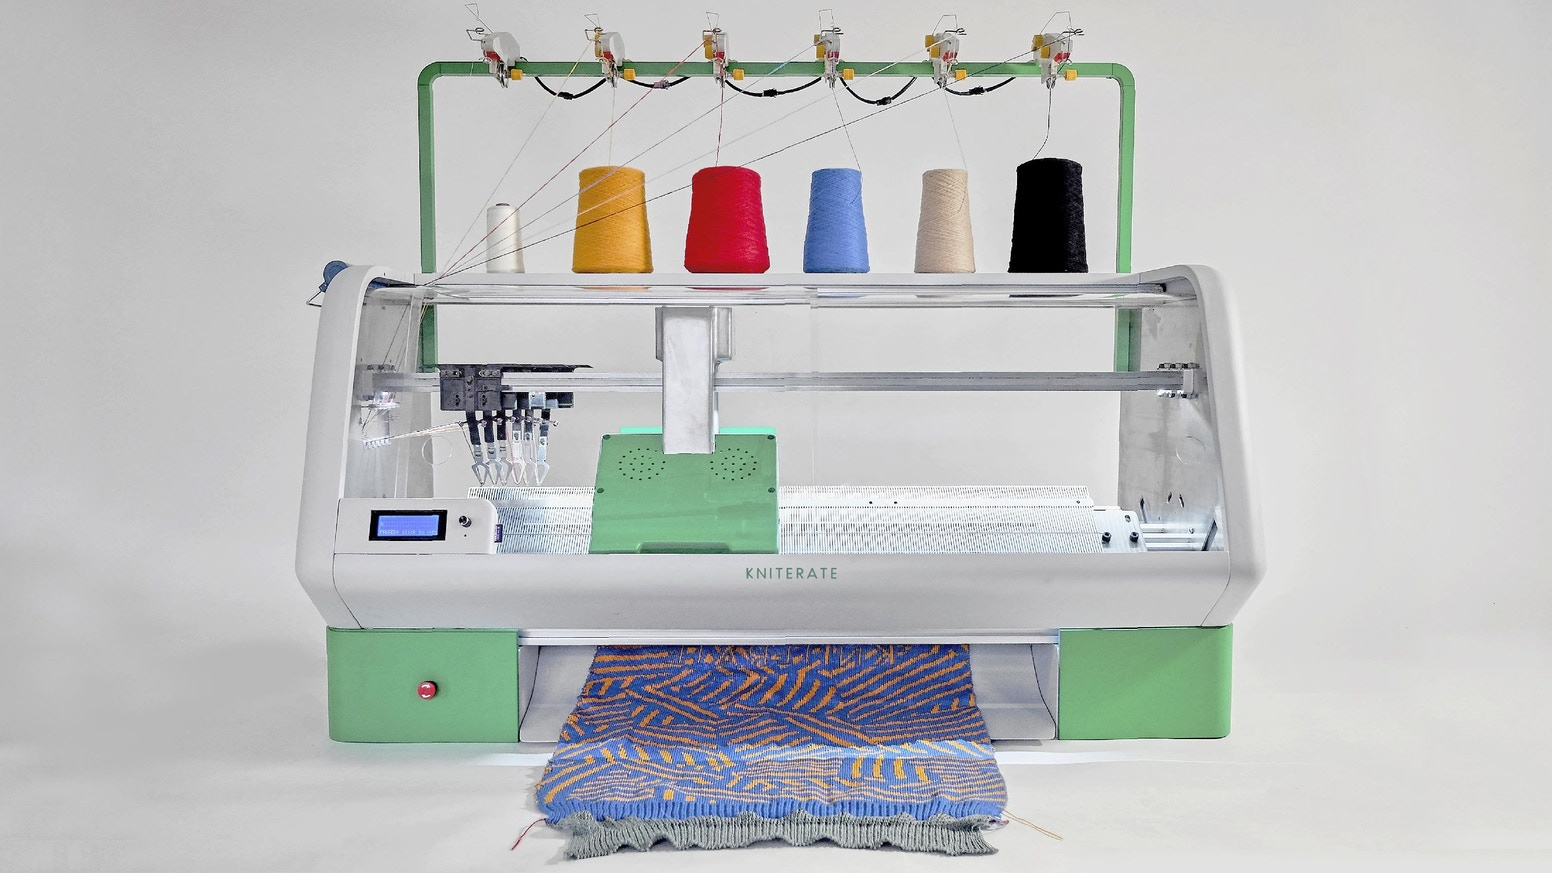 d19ddd6ed7d92 Kniterate: The Digital Knitting Machine by Kniterate — Kickstarter